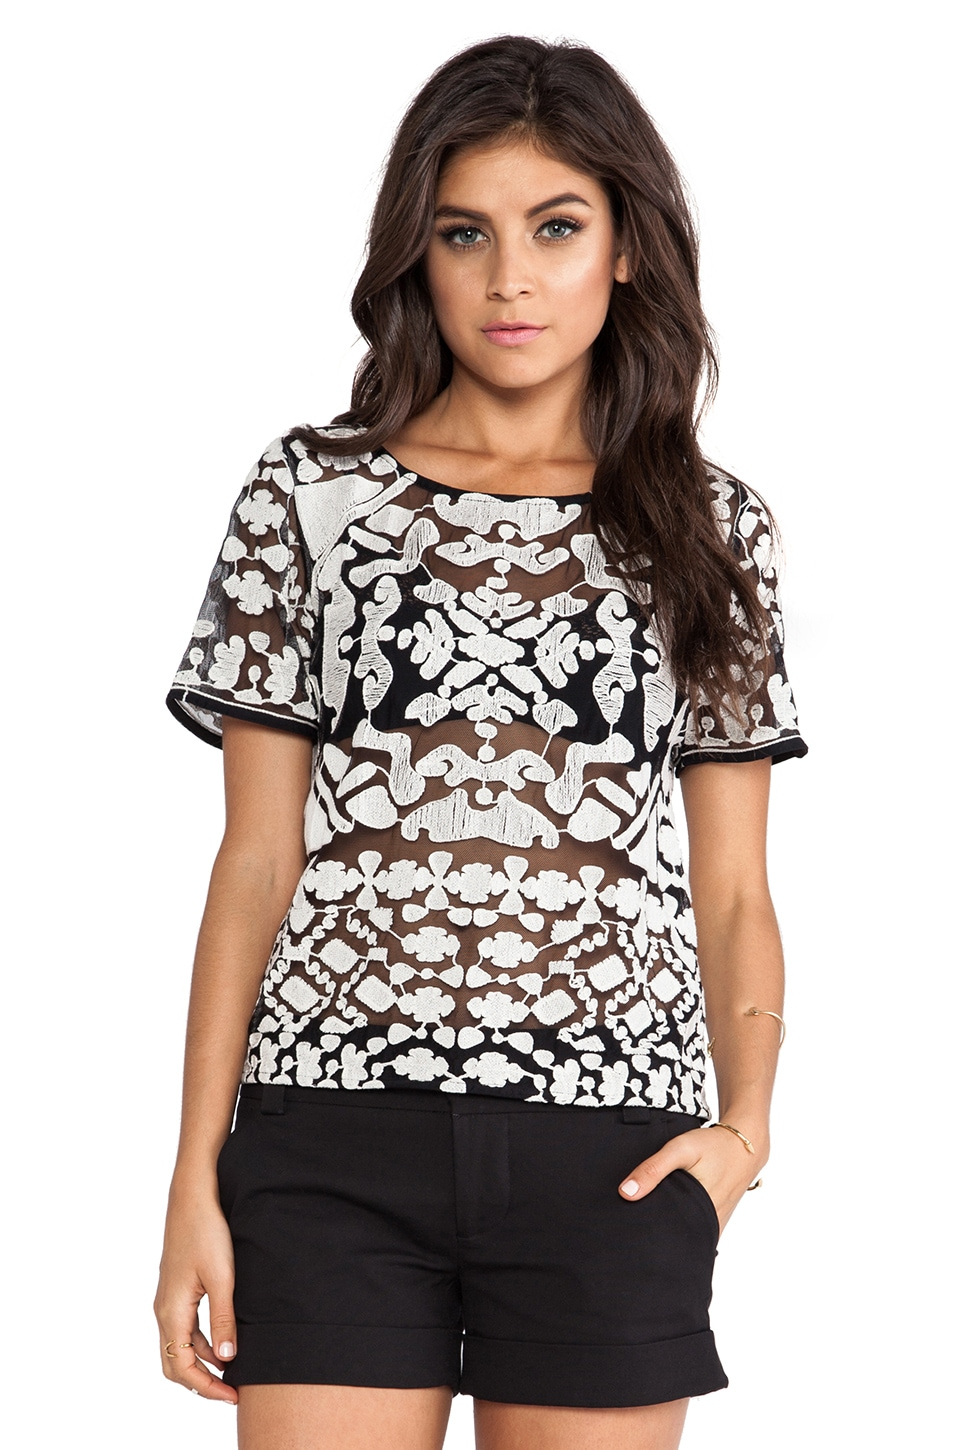 Greylin Chloe Embroidered Top in Black